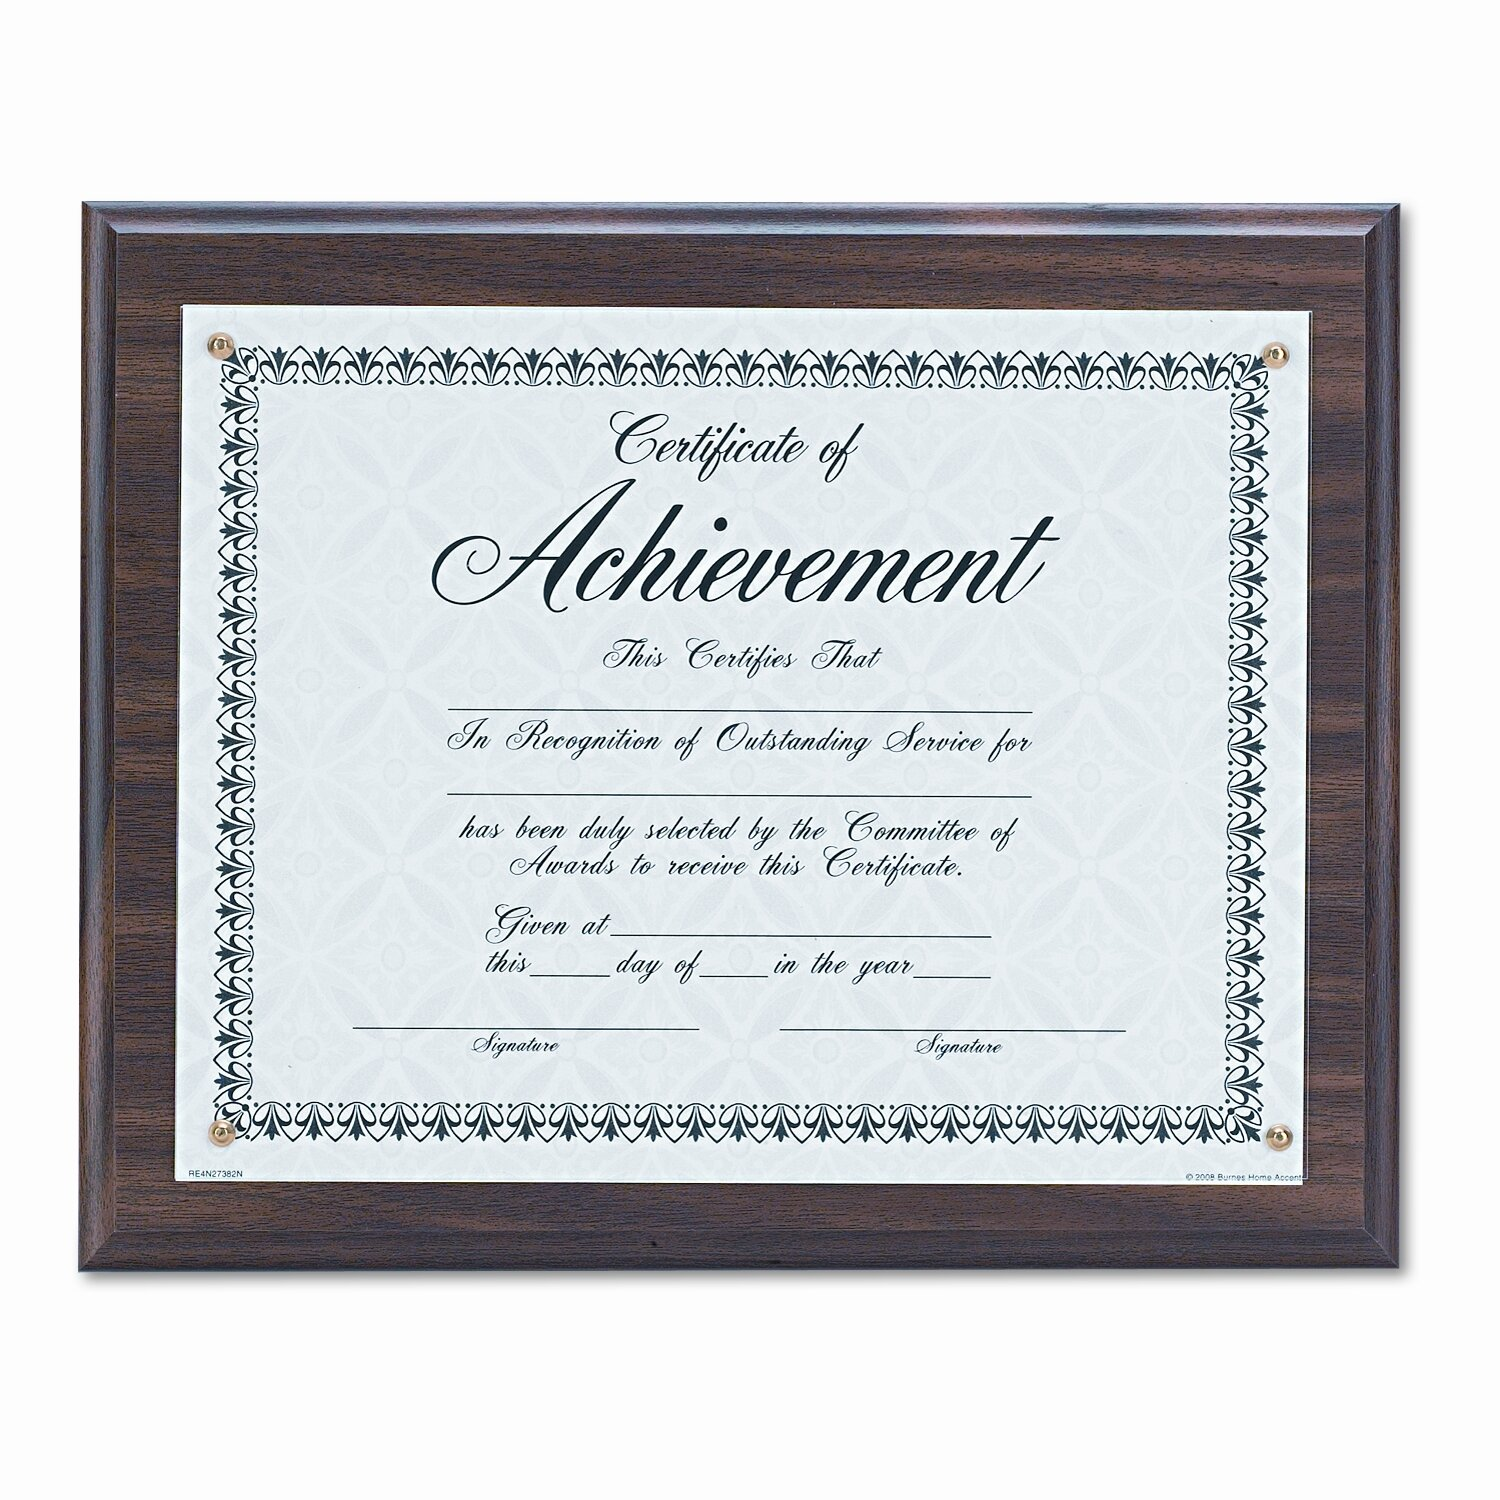 dax manufacturing inc award plaque wood acrylic frame fits up to 8 1 2 x 11 walnut reviews. Black Bedroom Furniture Sets. Home Design Ideas